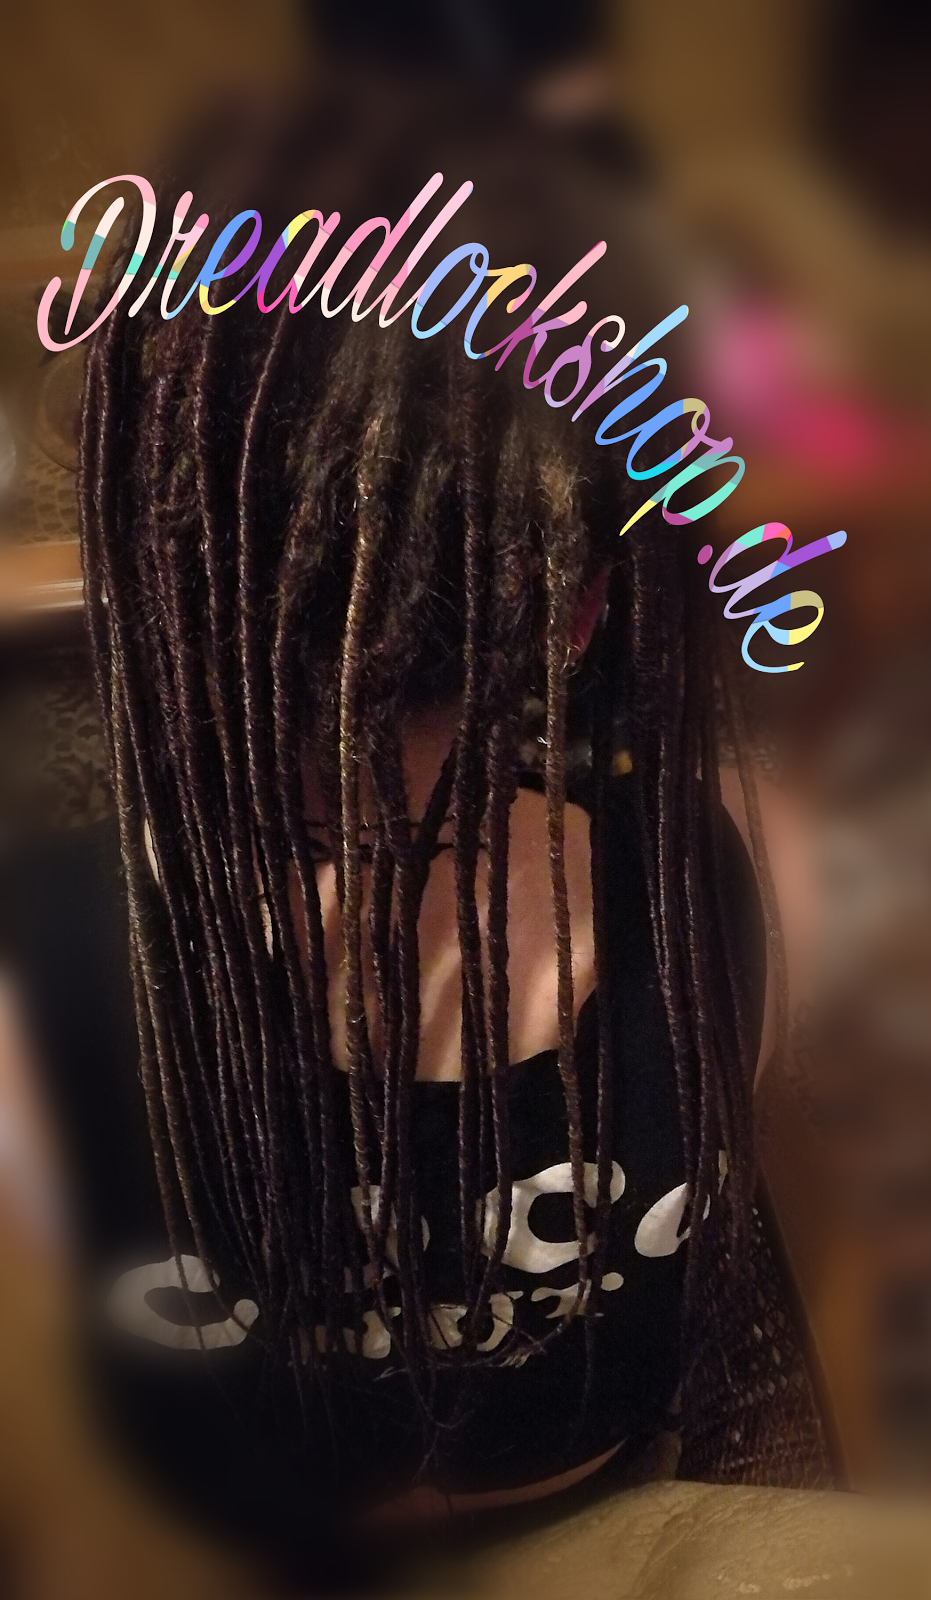 Dreadlockshop